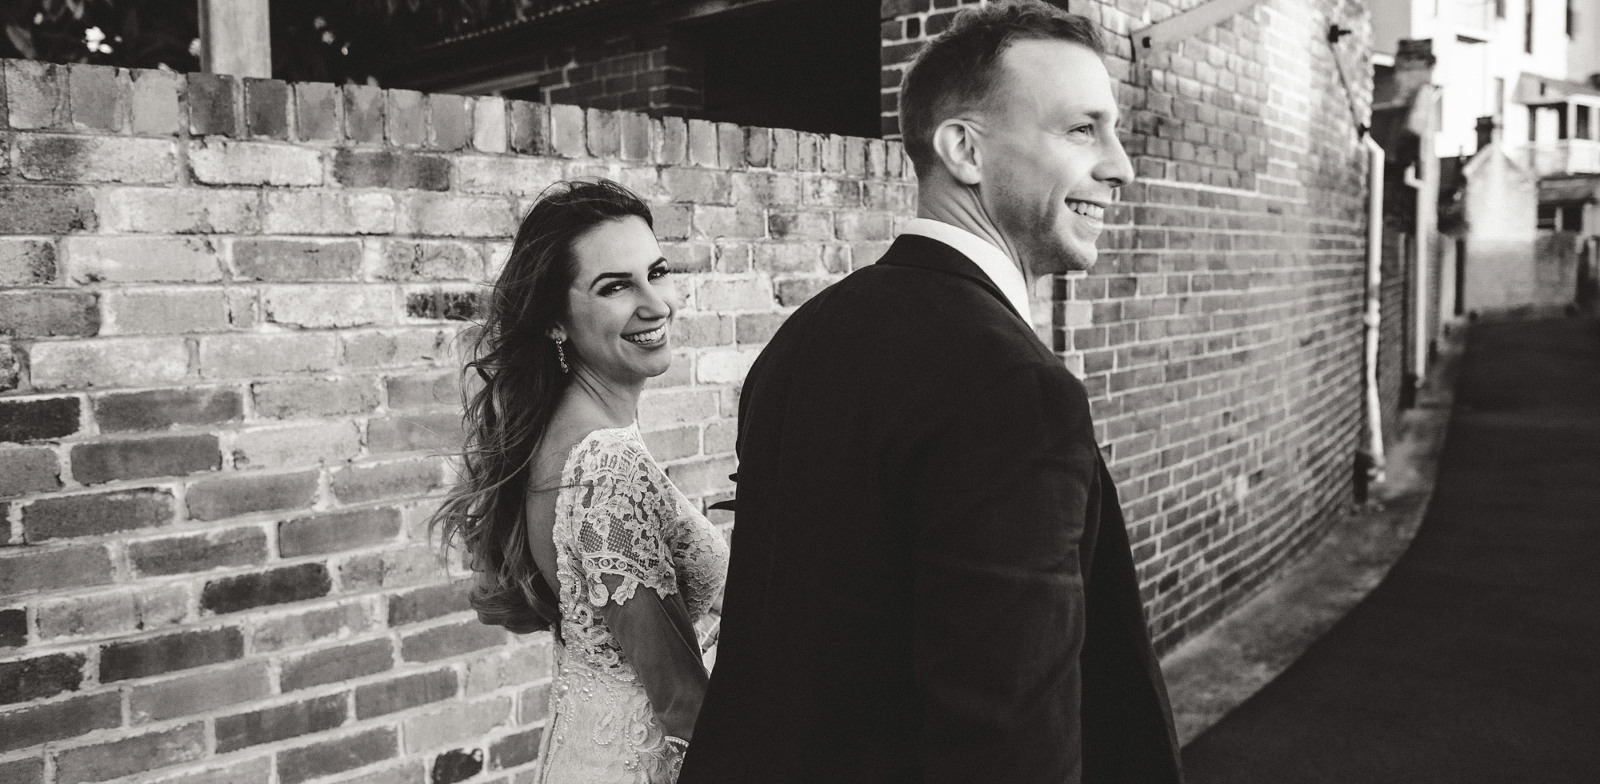 Larissa & Michael take a stroll in The Rocks for their wedding portraits